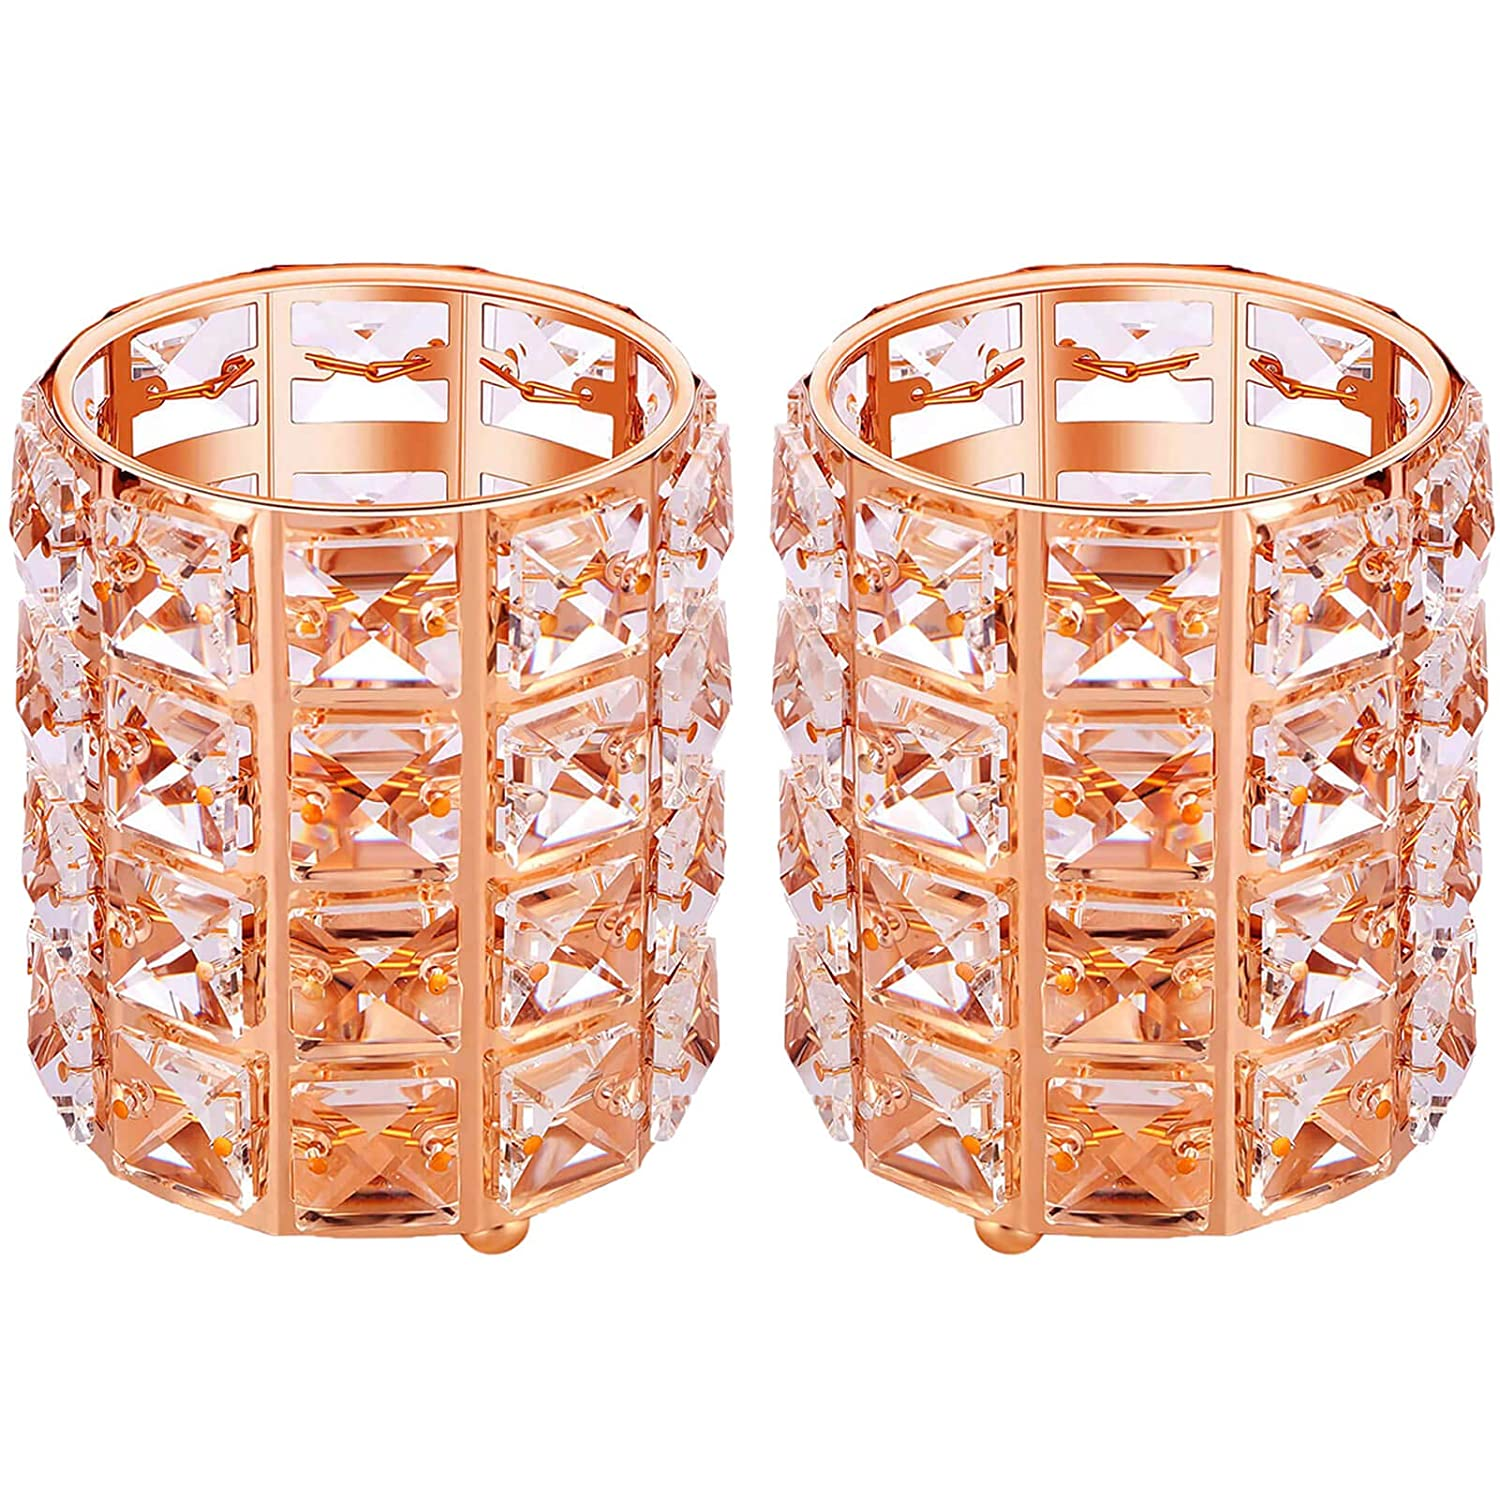 2 Pack Crystal Brush Holders, Rose Gold Party Decorations Bedroom Decor for Women Party Supplies Wedding Decor Room Organization Small Basket Bedroom Accessories Family Wall Decor(Rose Gold)